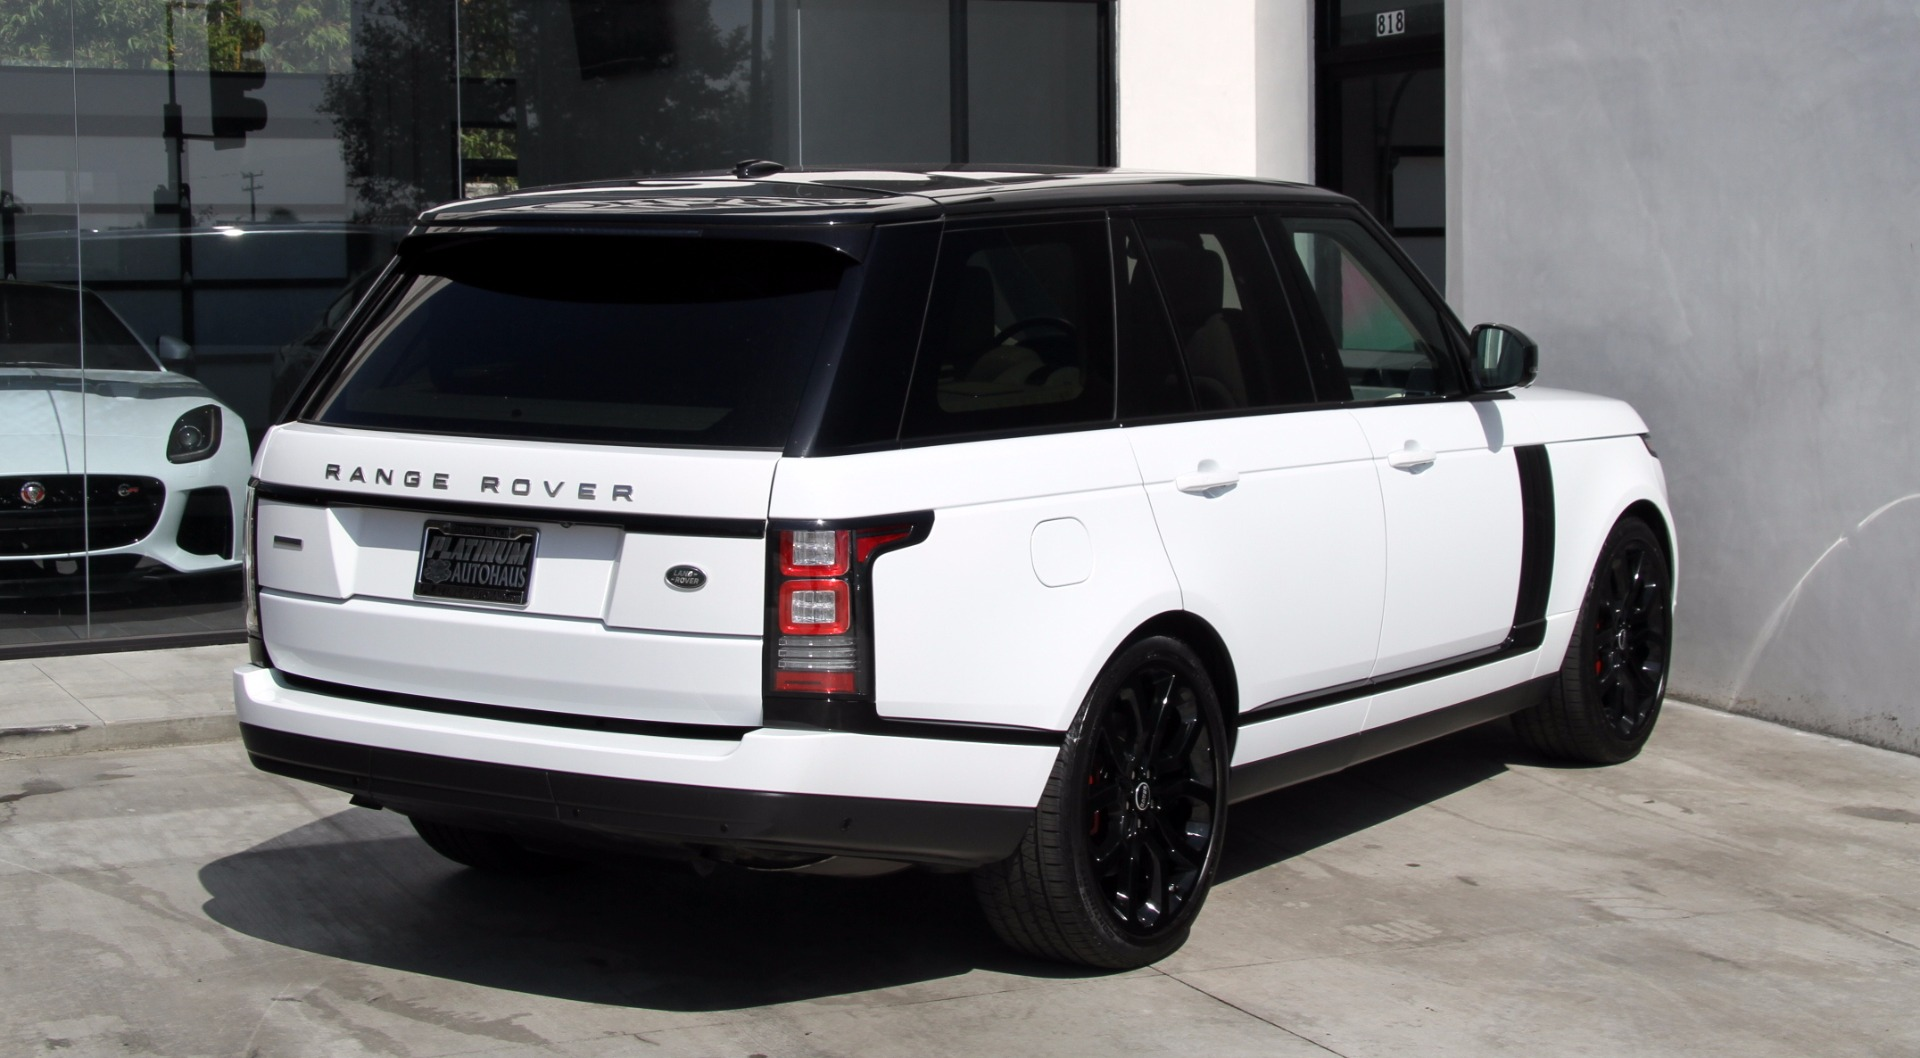 Land Rover For Sale Near Me >> 2014 Land Rover Range Rover Supercharged Stock # 196900 ...